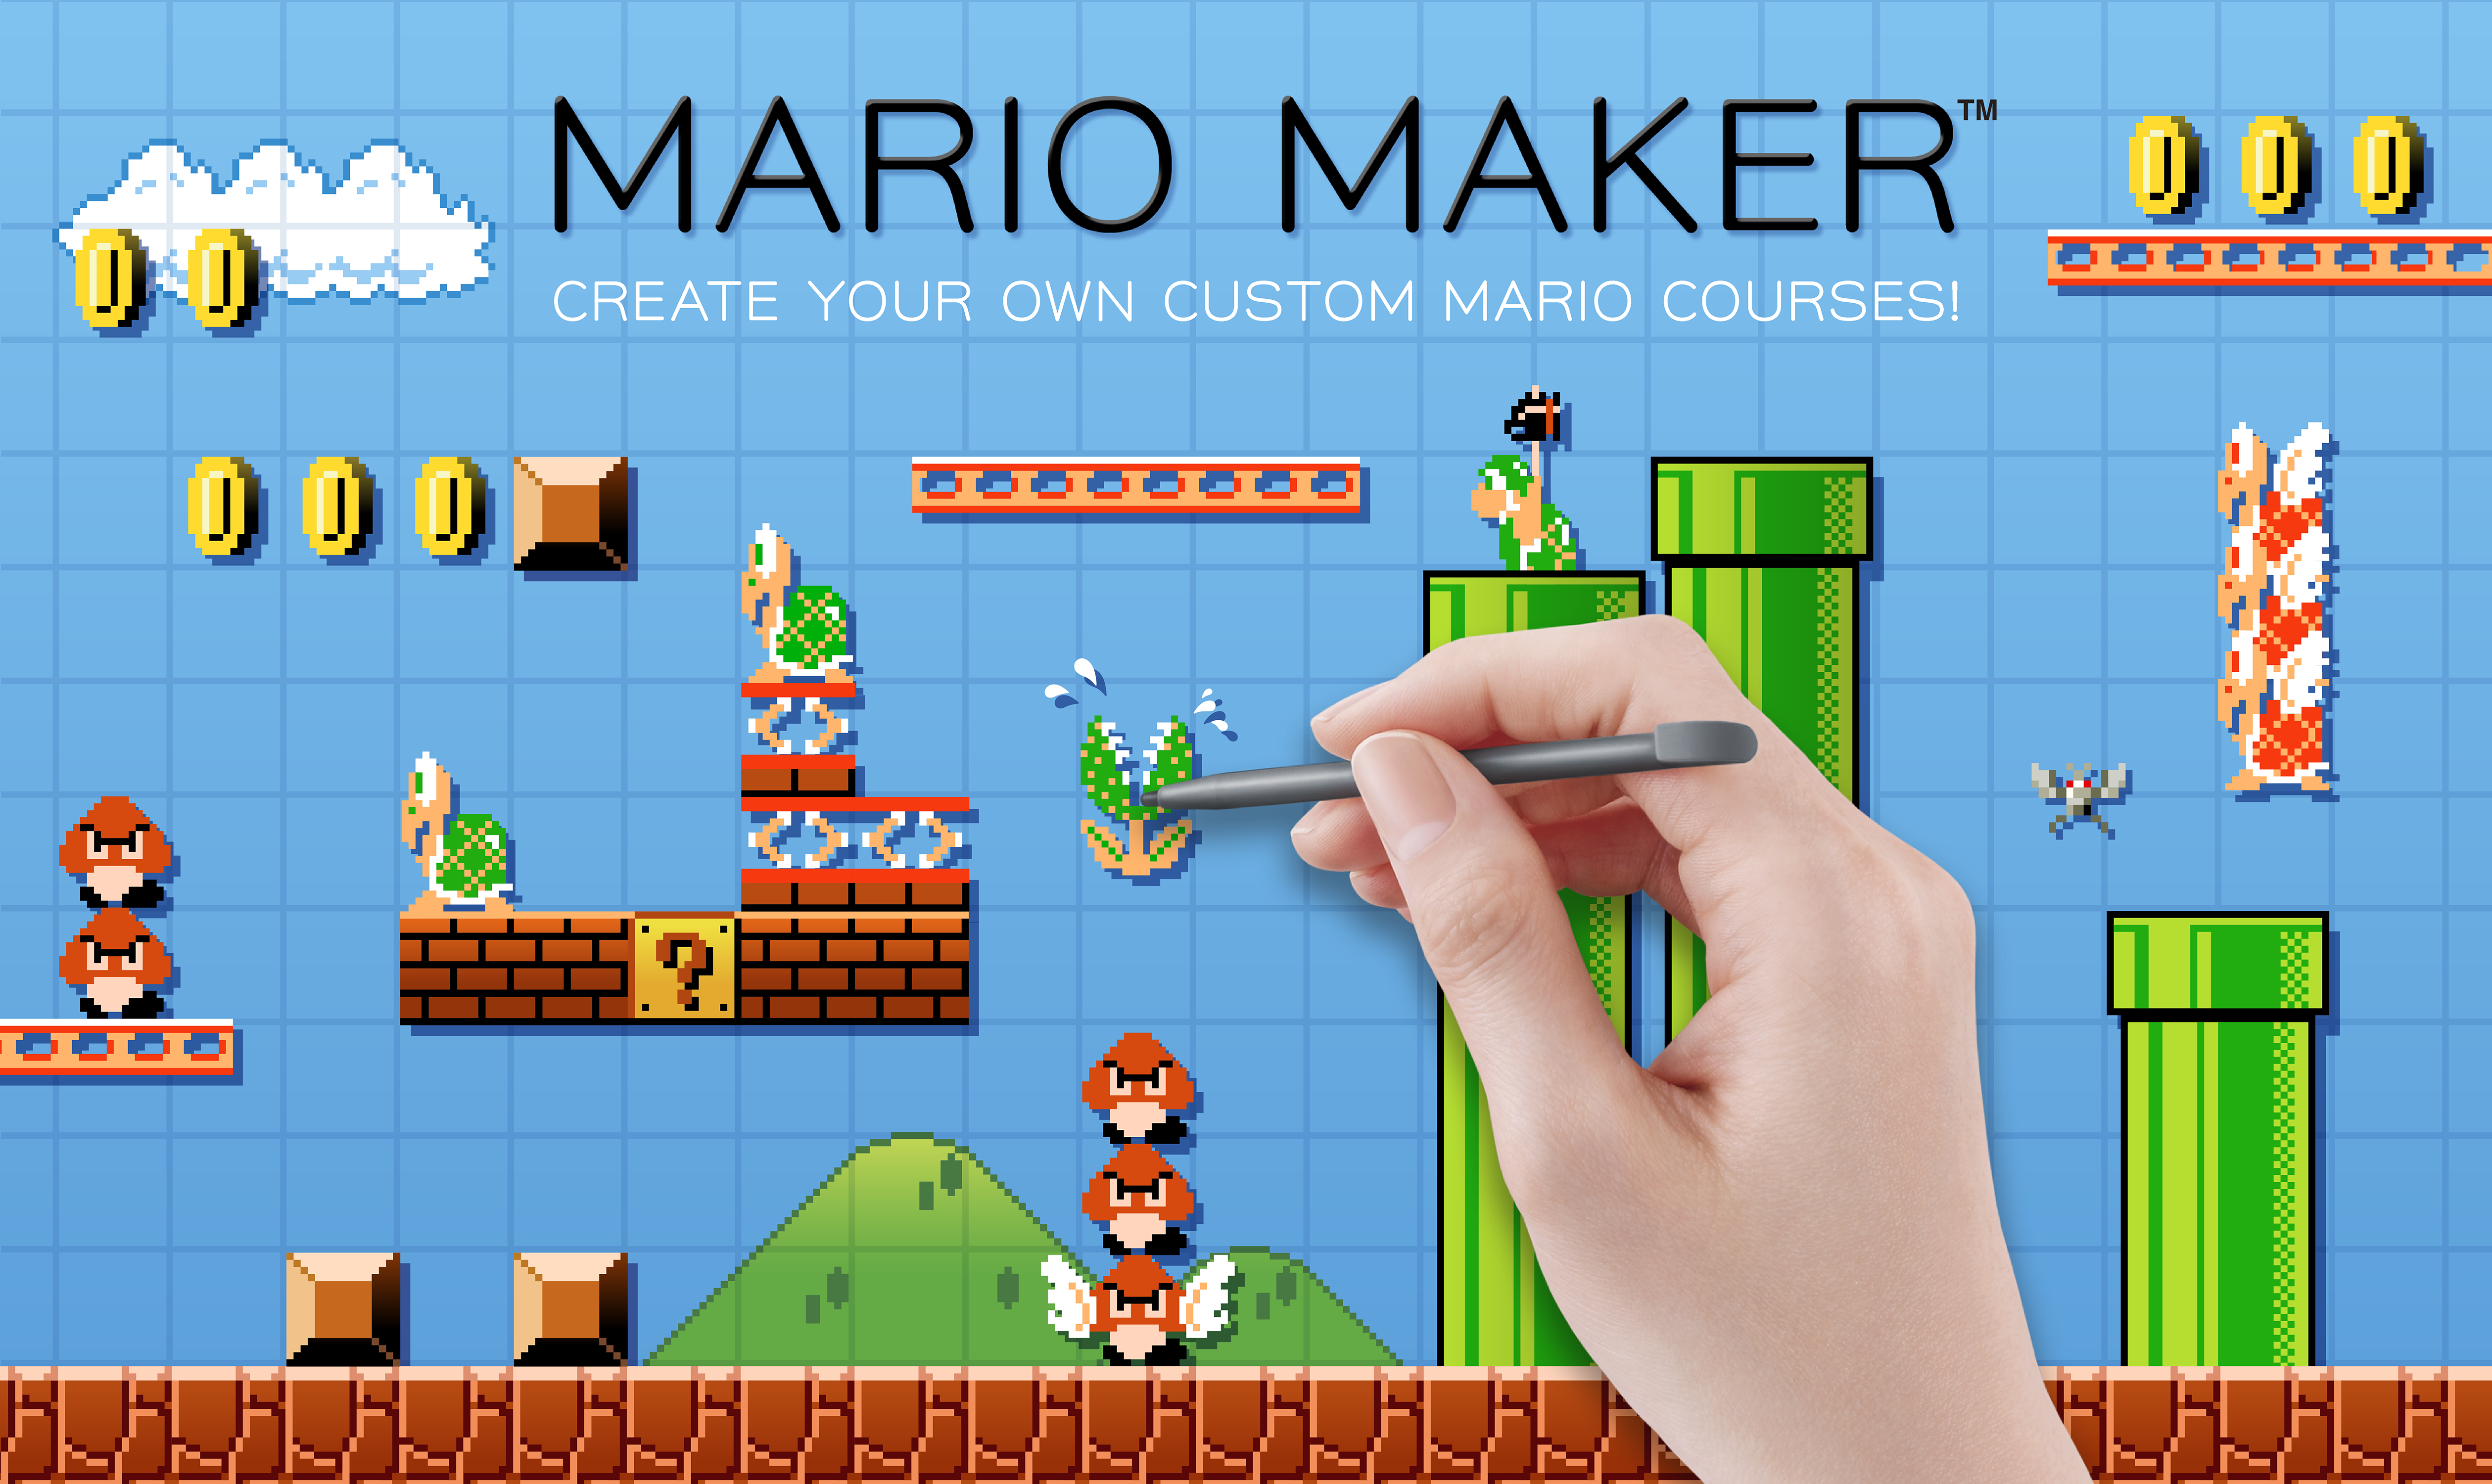 Mario Maker puts a new spin on the NES classic